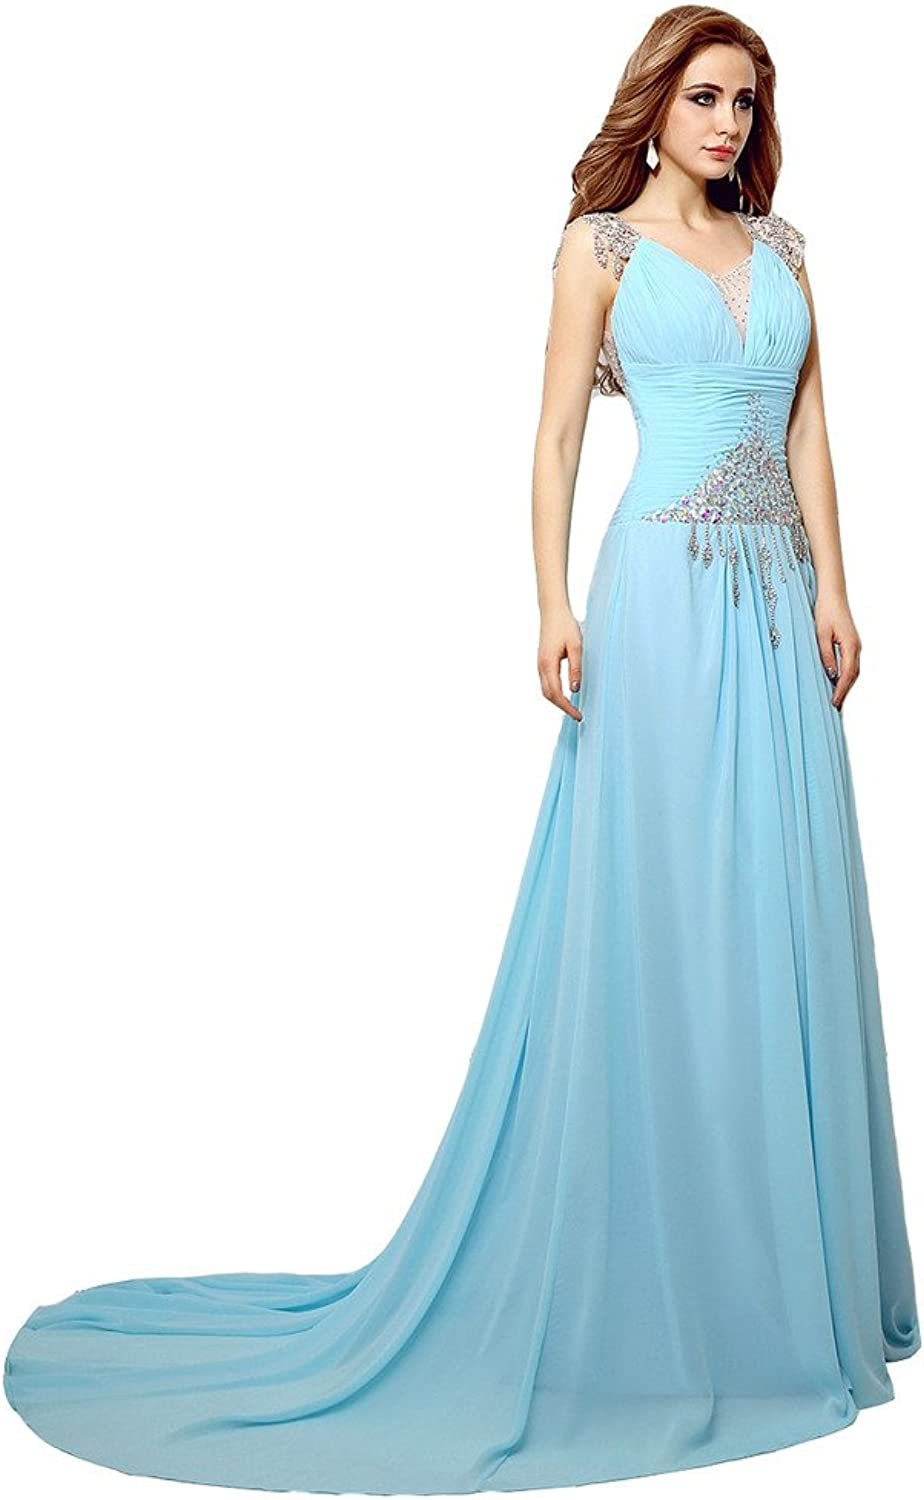 Lemai Women's Crystals Long Formal Evening Prom Dresses Sheer Back Baby bluee